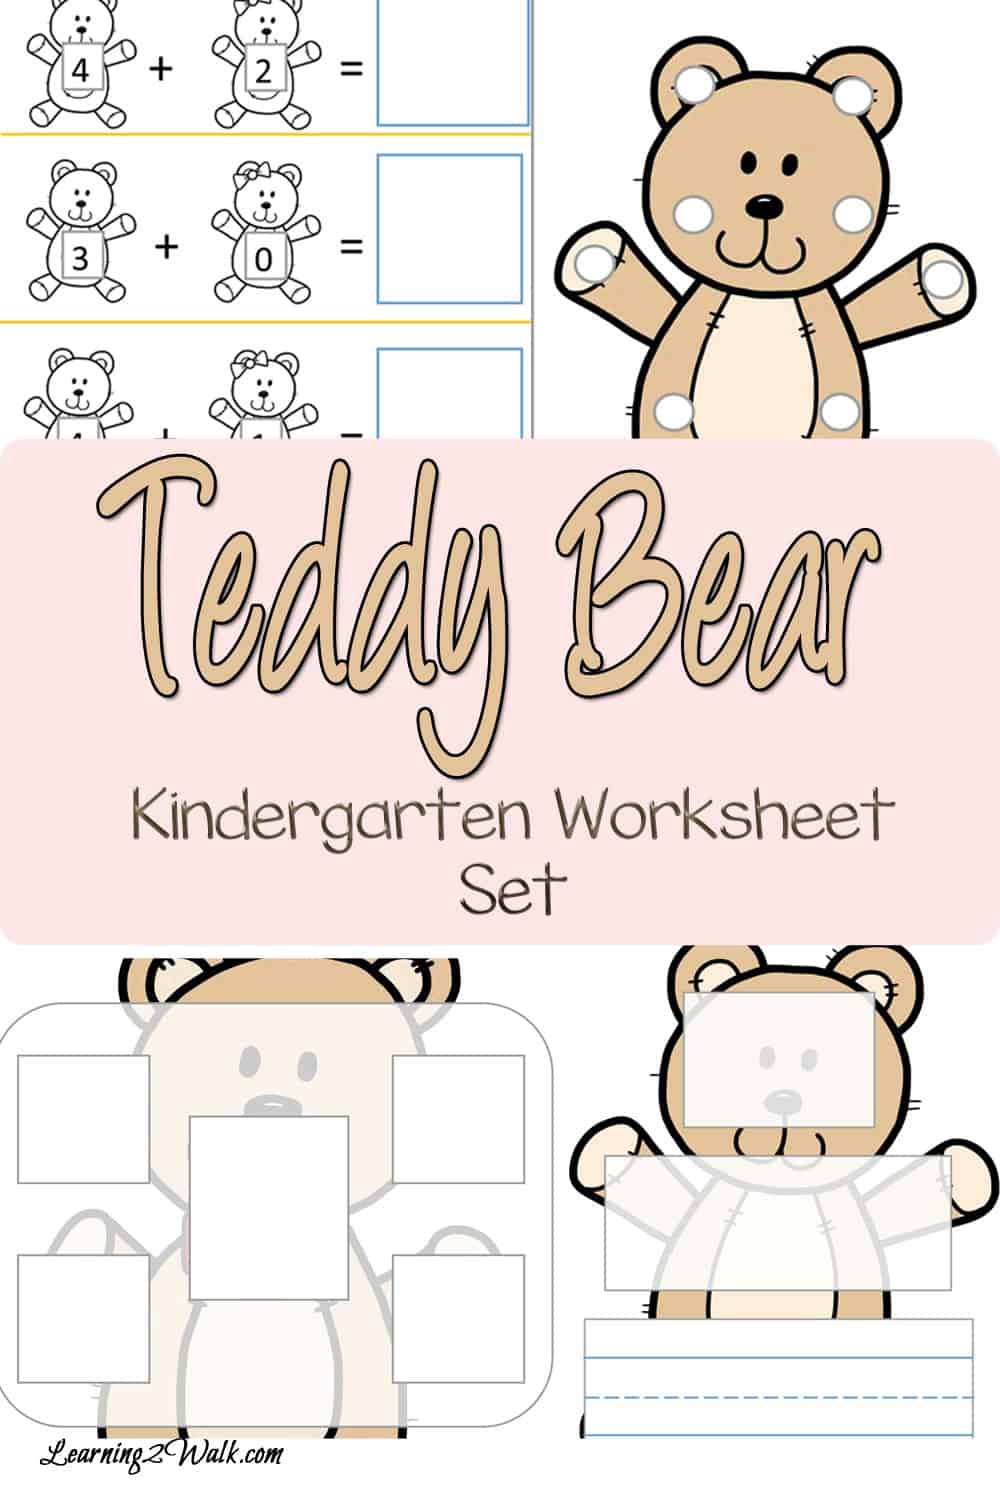 Use this teddy bear kindergarten worksheet set to work on cvc words, addition, lacing and more with your kids.